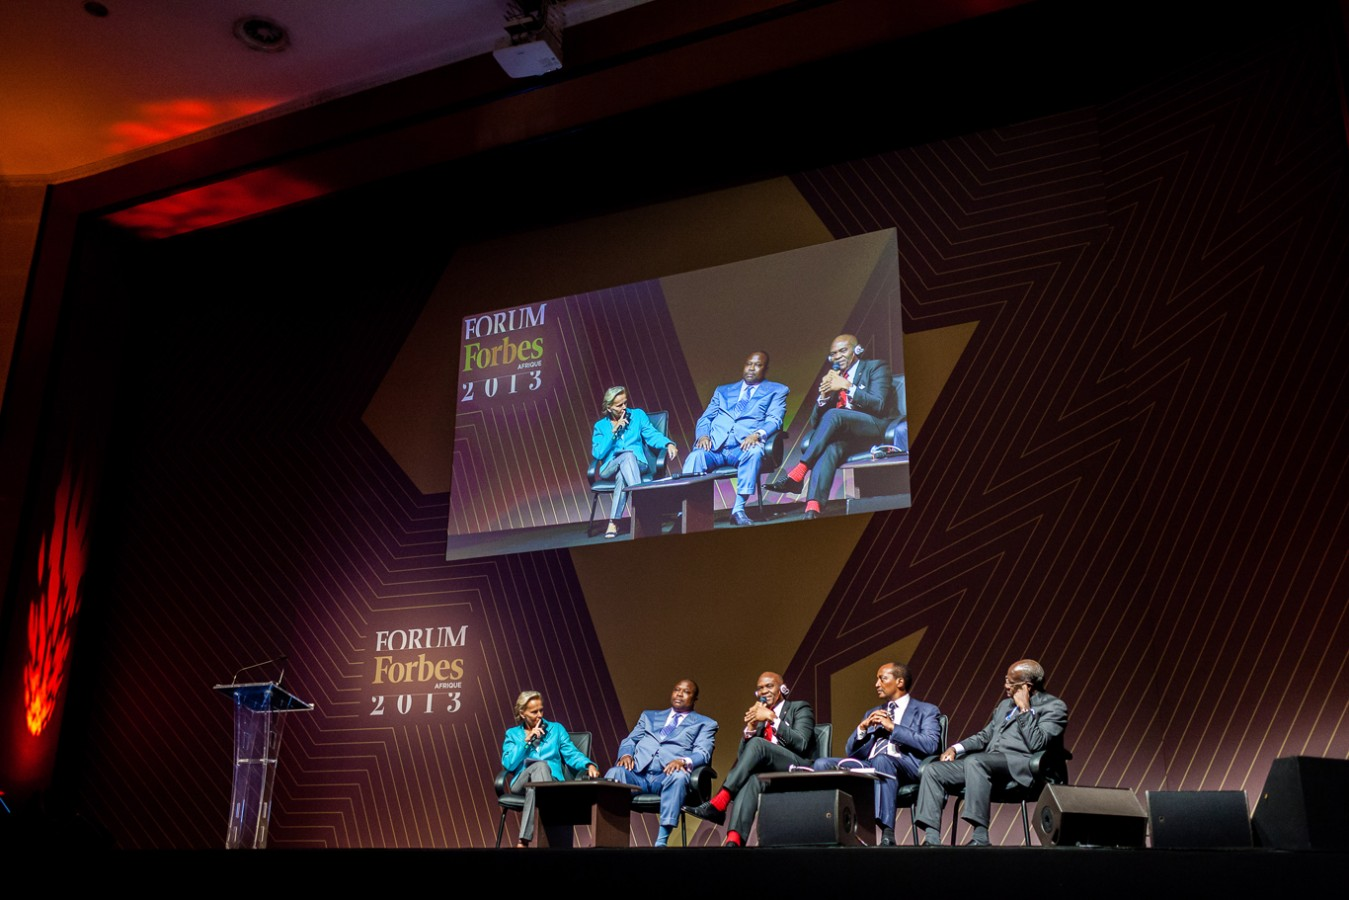 FORBES - FORUM - 2013 - Agence HavasEvent